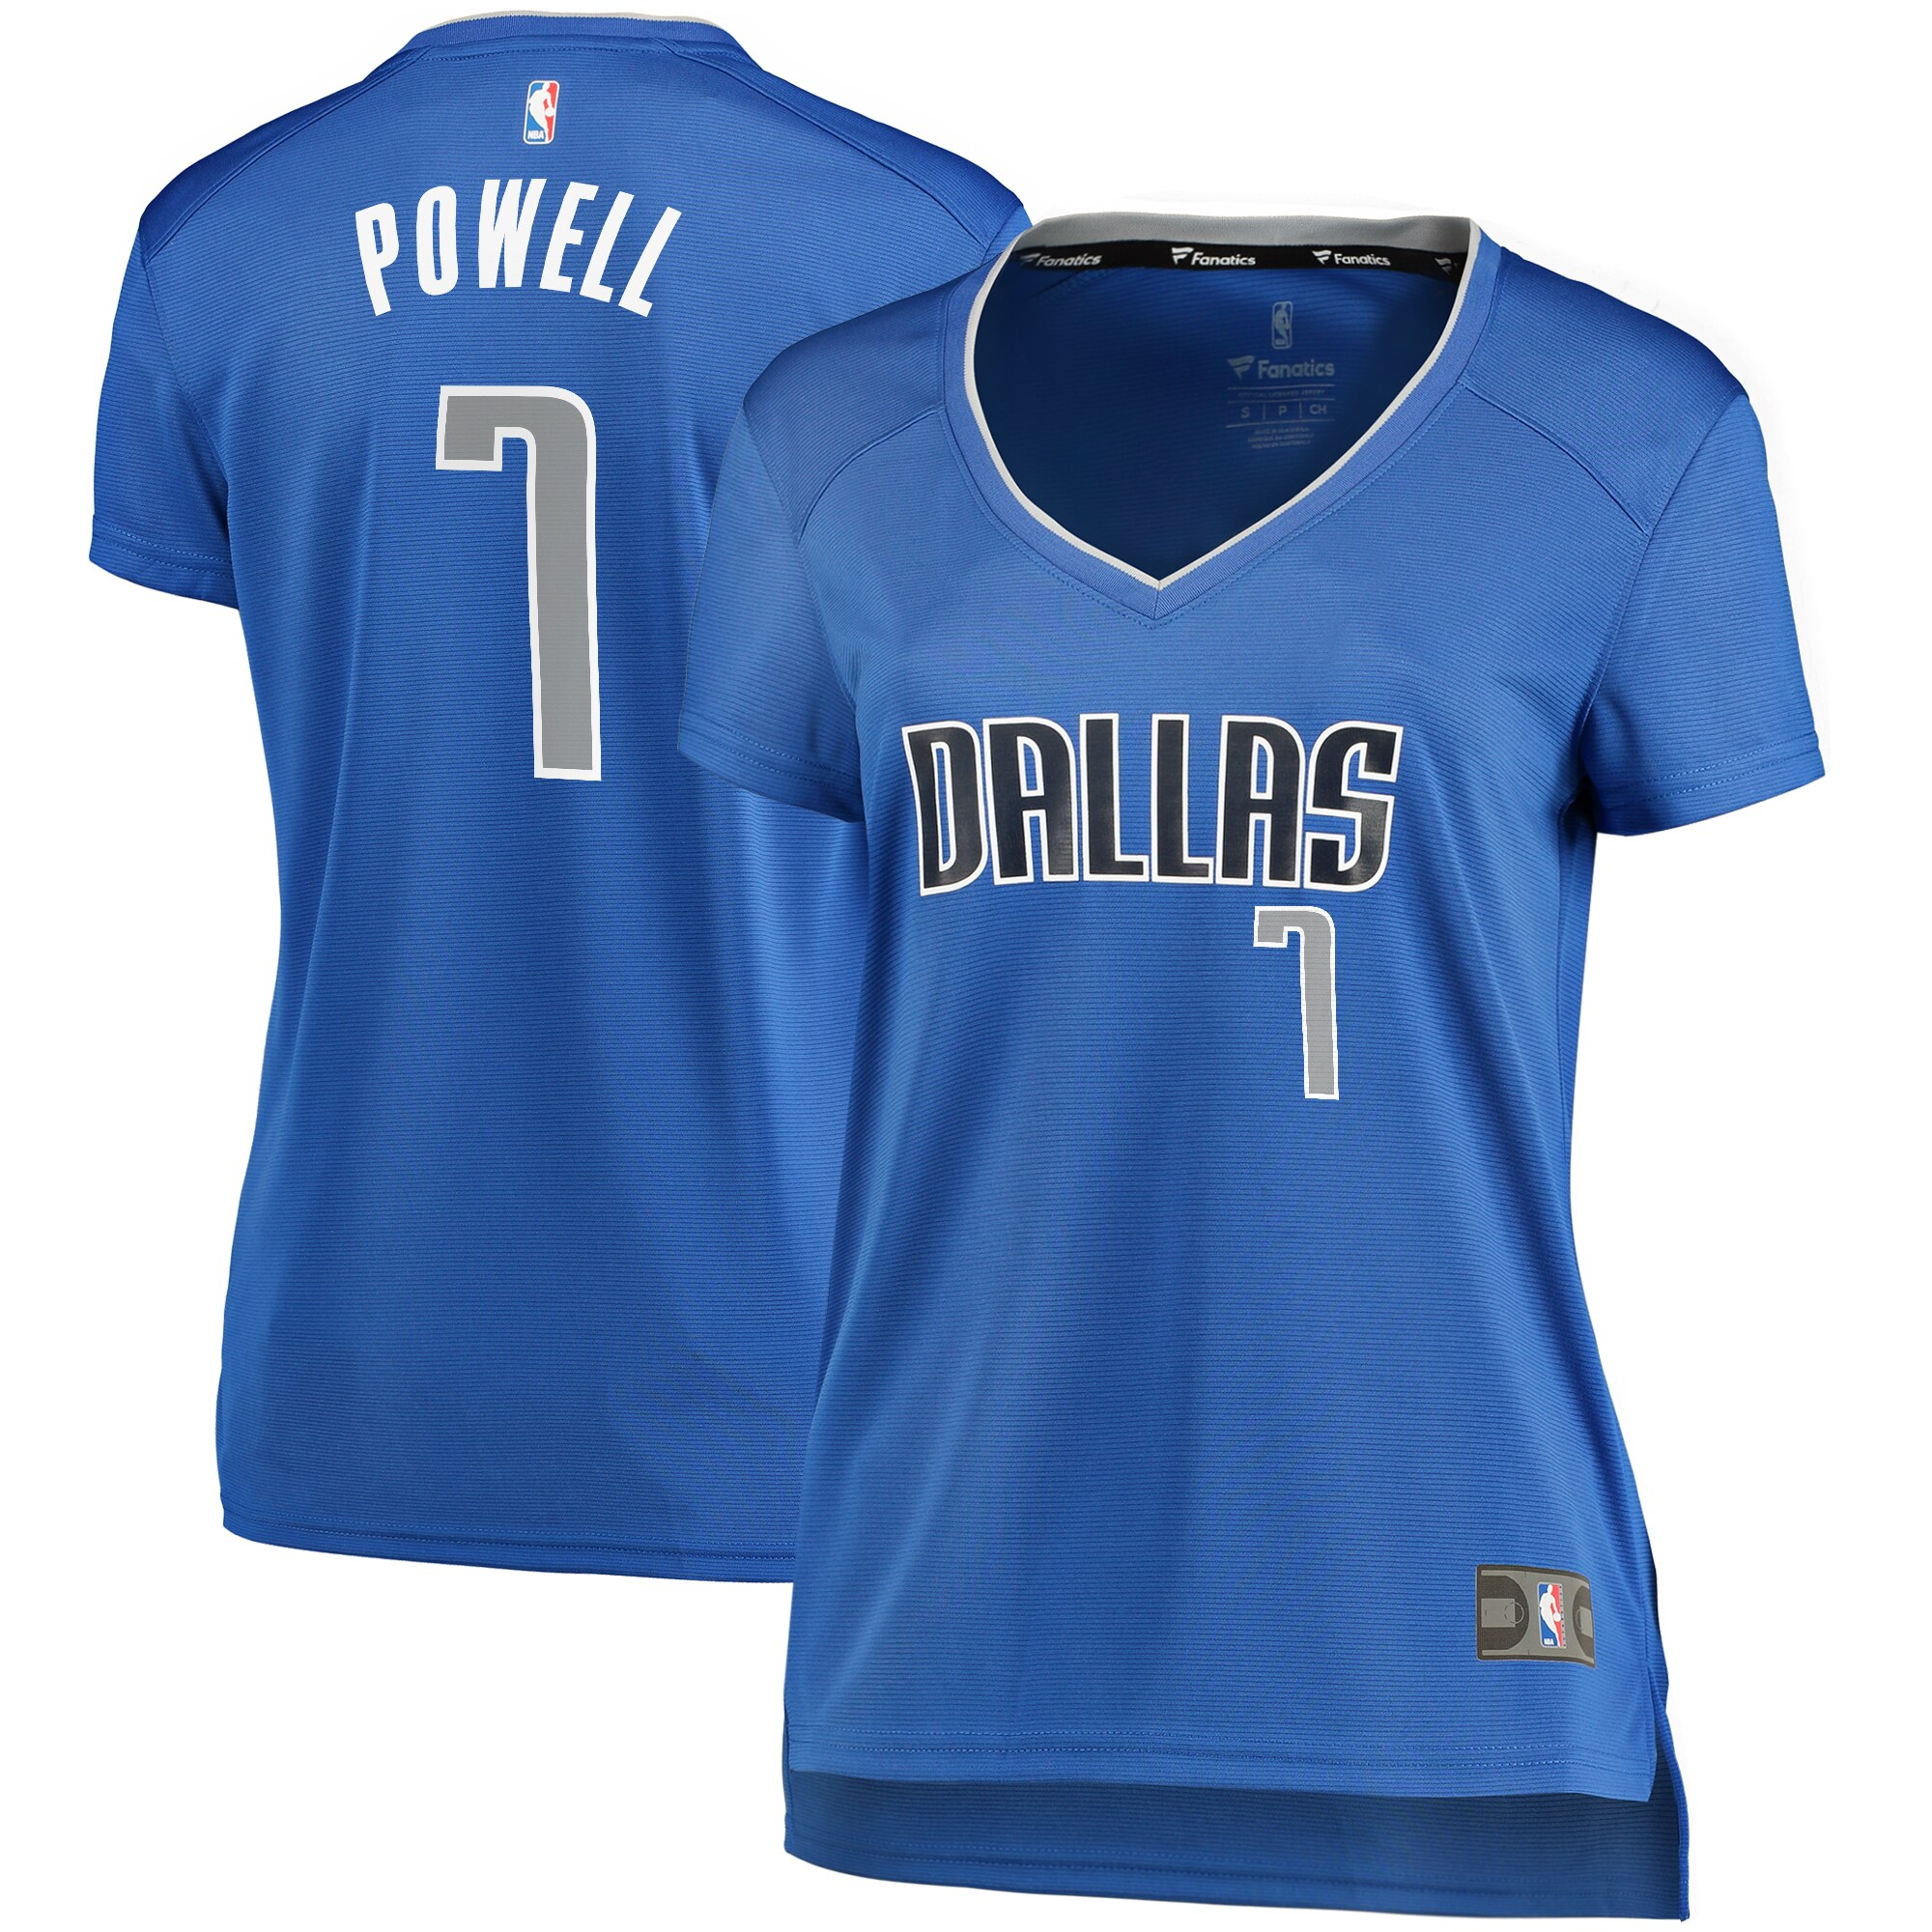 Dwight Powell Dallas Mavericks Fanatics Branded Women's Fast Break Player Replica Jersey - Icon Edition - Blue